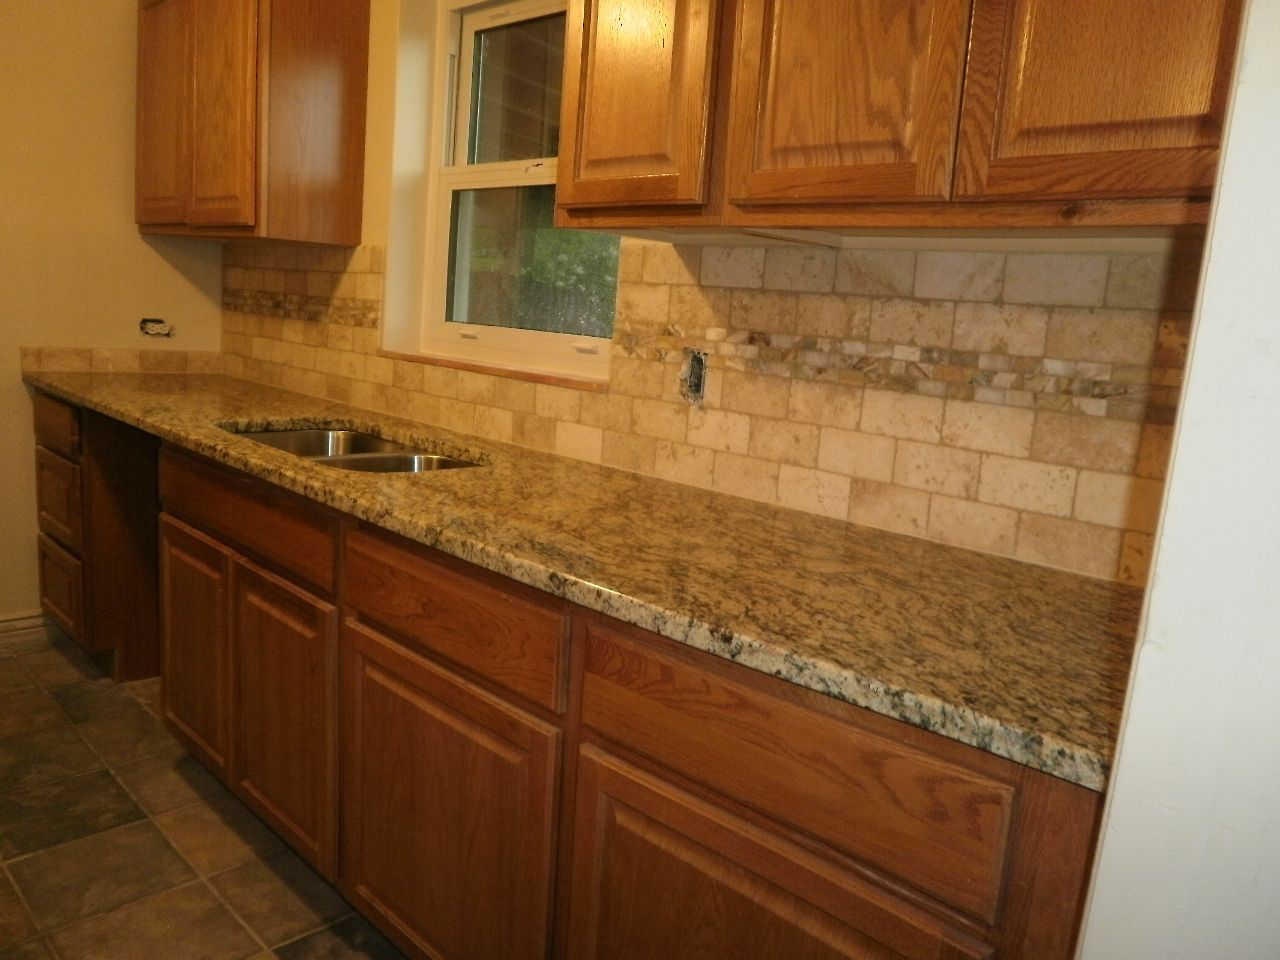 kitchen backsplash ideas granite countertops backsplash ideas front